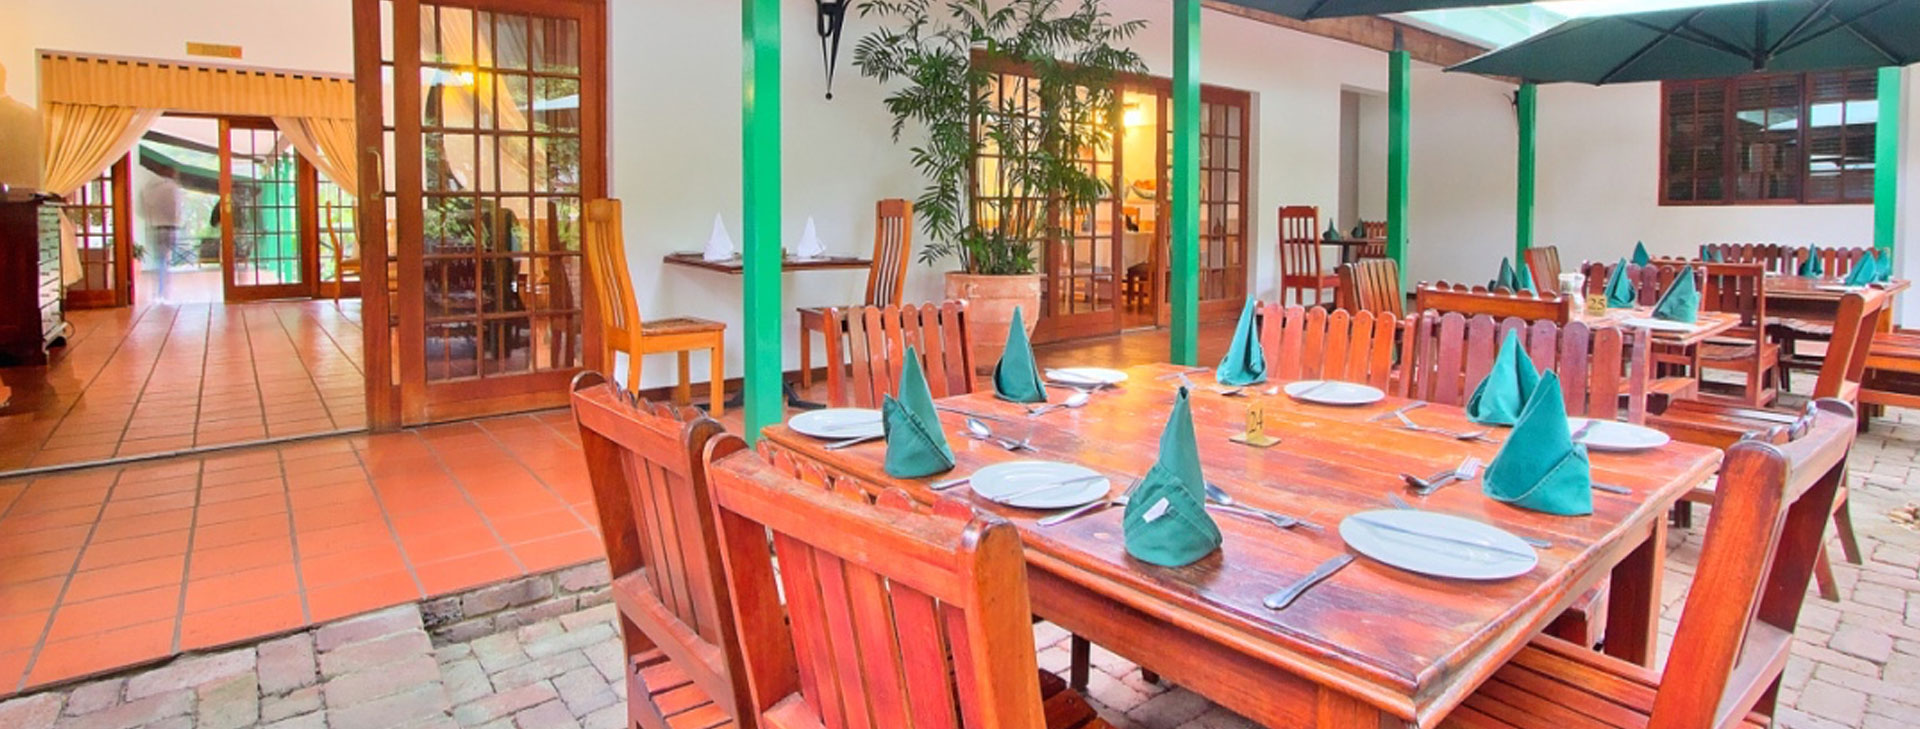 Enjoy our country cuisine in the Restaurant or on the terrace